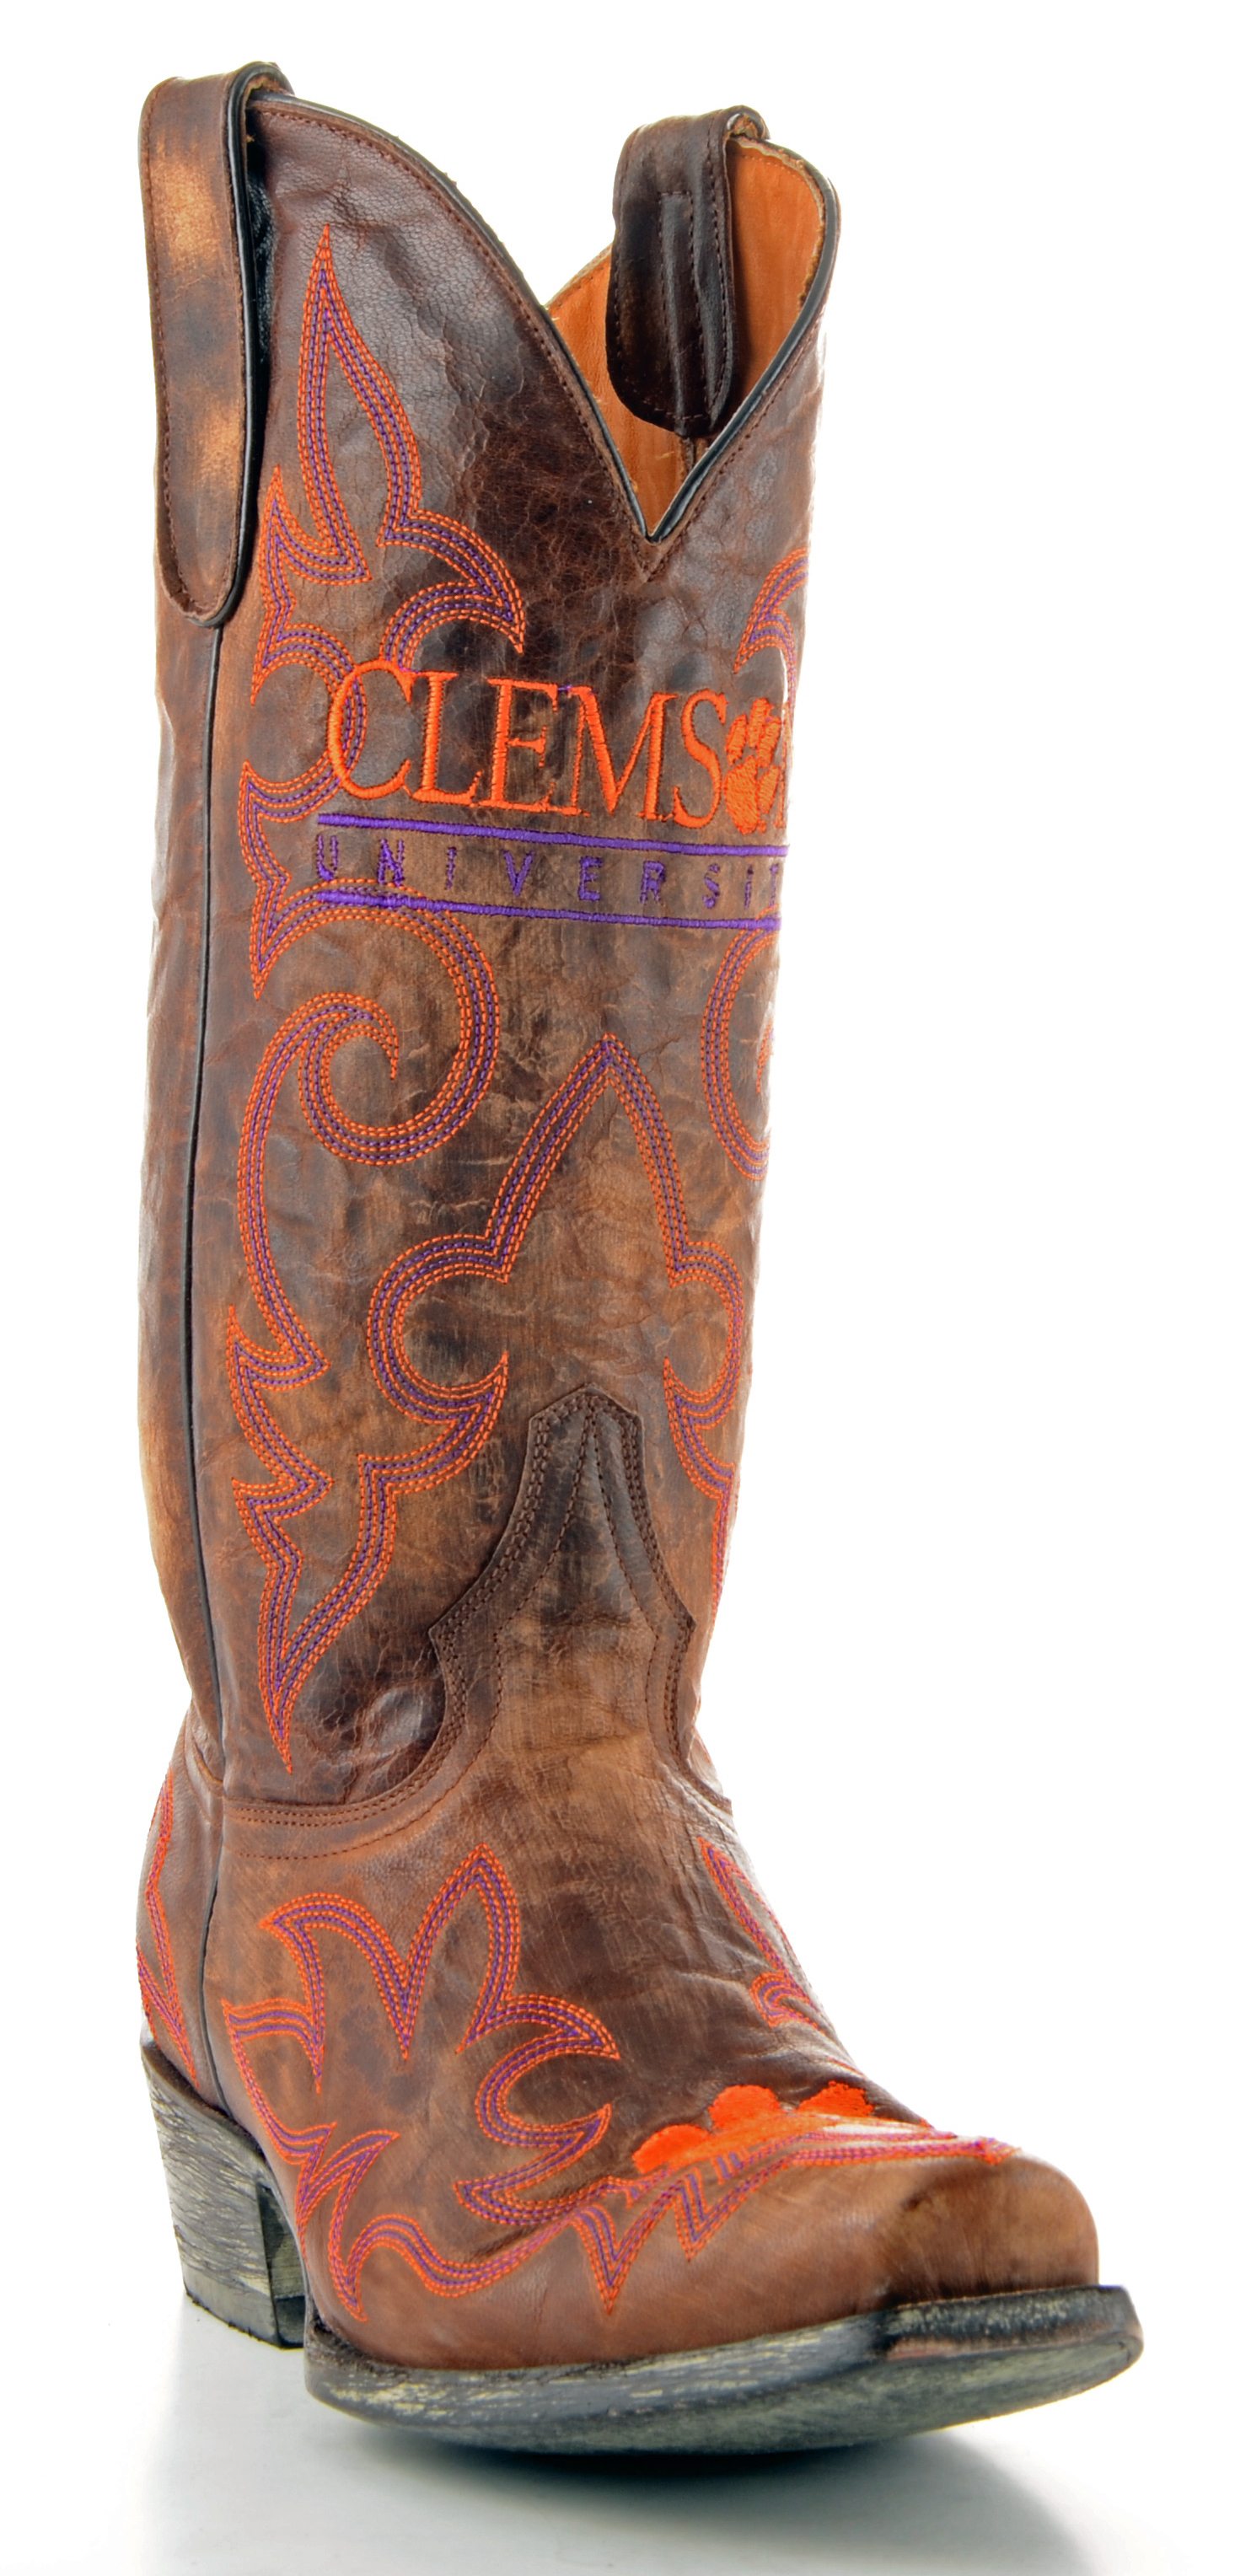 Gameday Boots Mens Leather Clemson Cowboy Boots by GameDay Boots